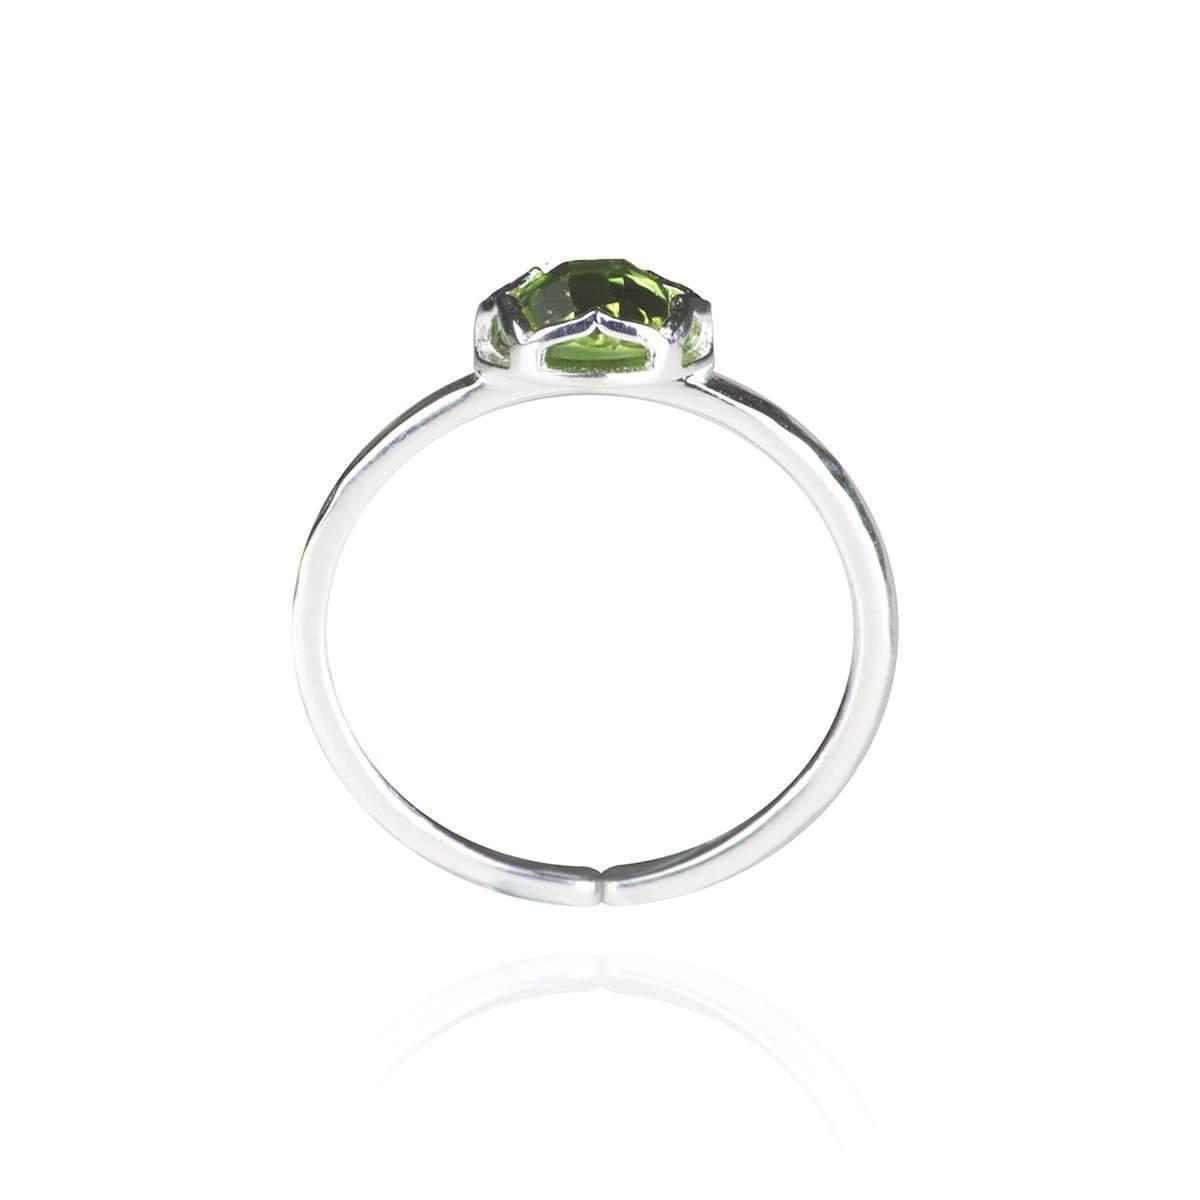 Zefyr Dosha Ring Sterling Silver With Peridot - UK T 1/2 - US 10 - EU 62 1/4